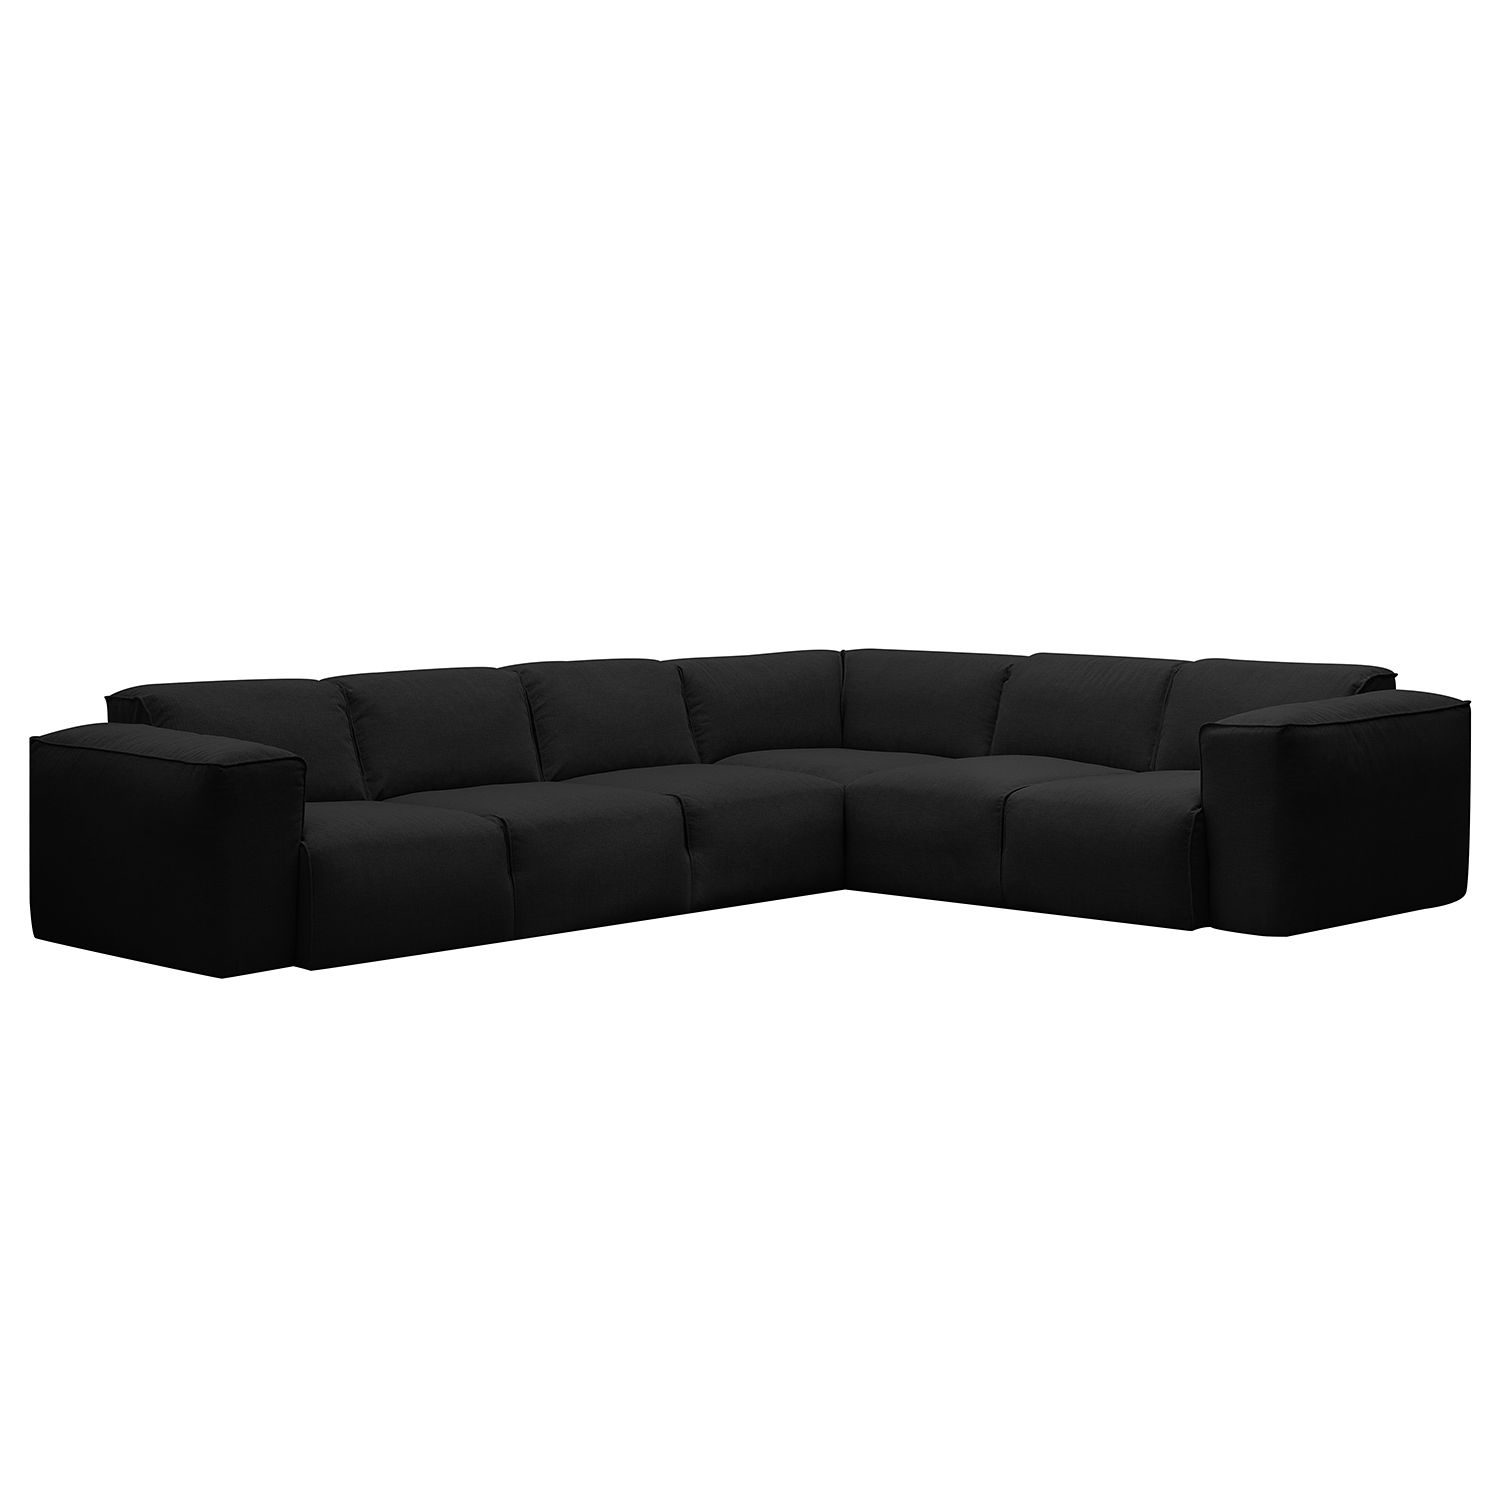 sofa gnstig kaufen hamburg das beste aus wohndesign und m bel inspiration. Black Bedroom Furniture Sets. Home Design Ideas